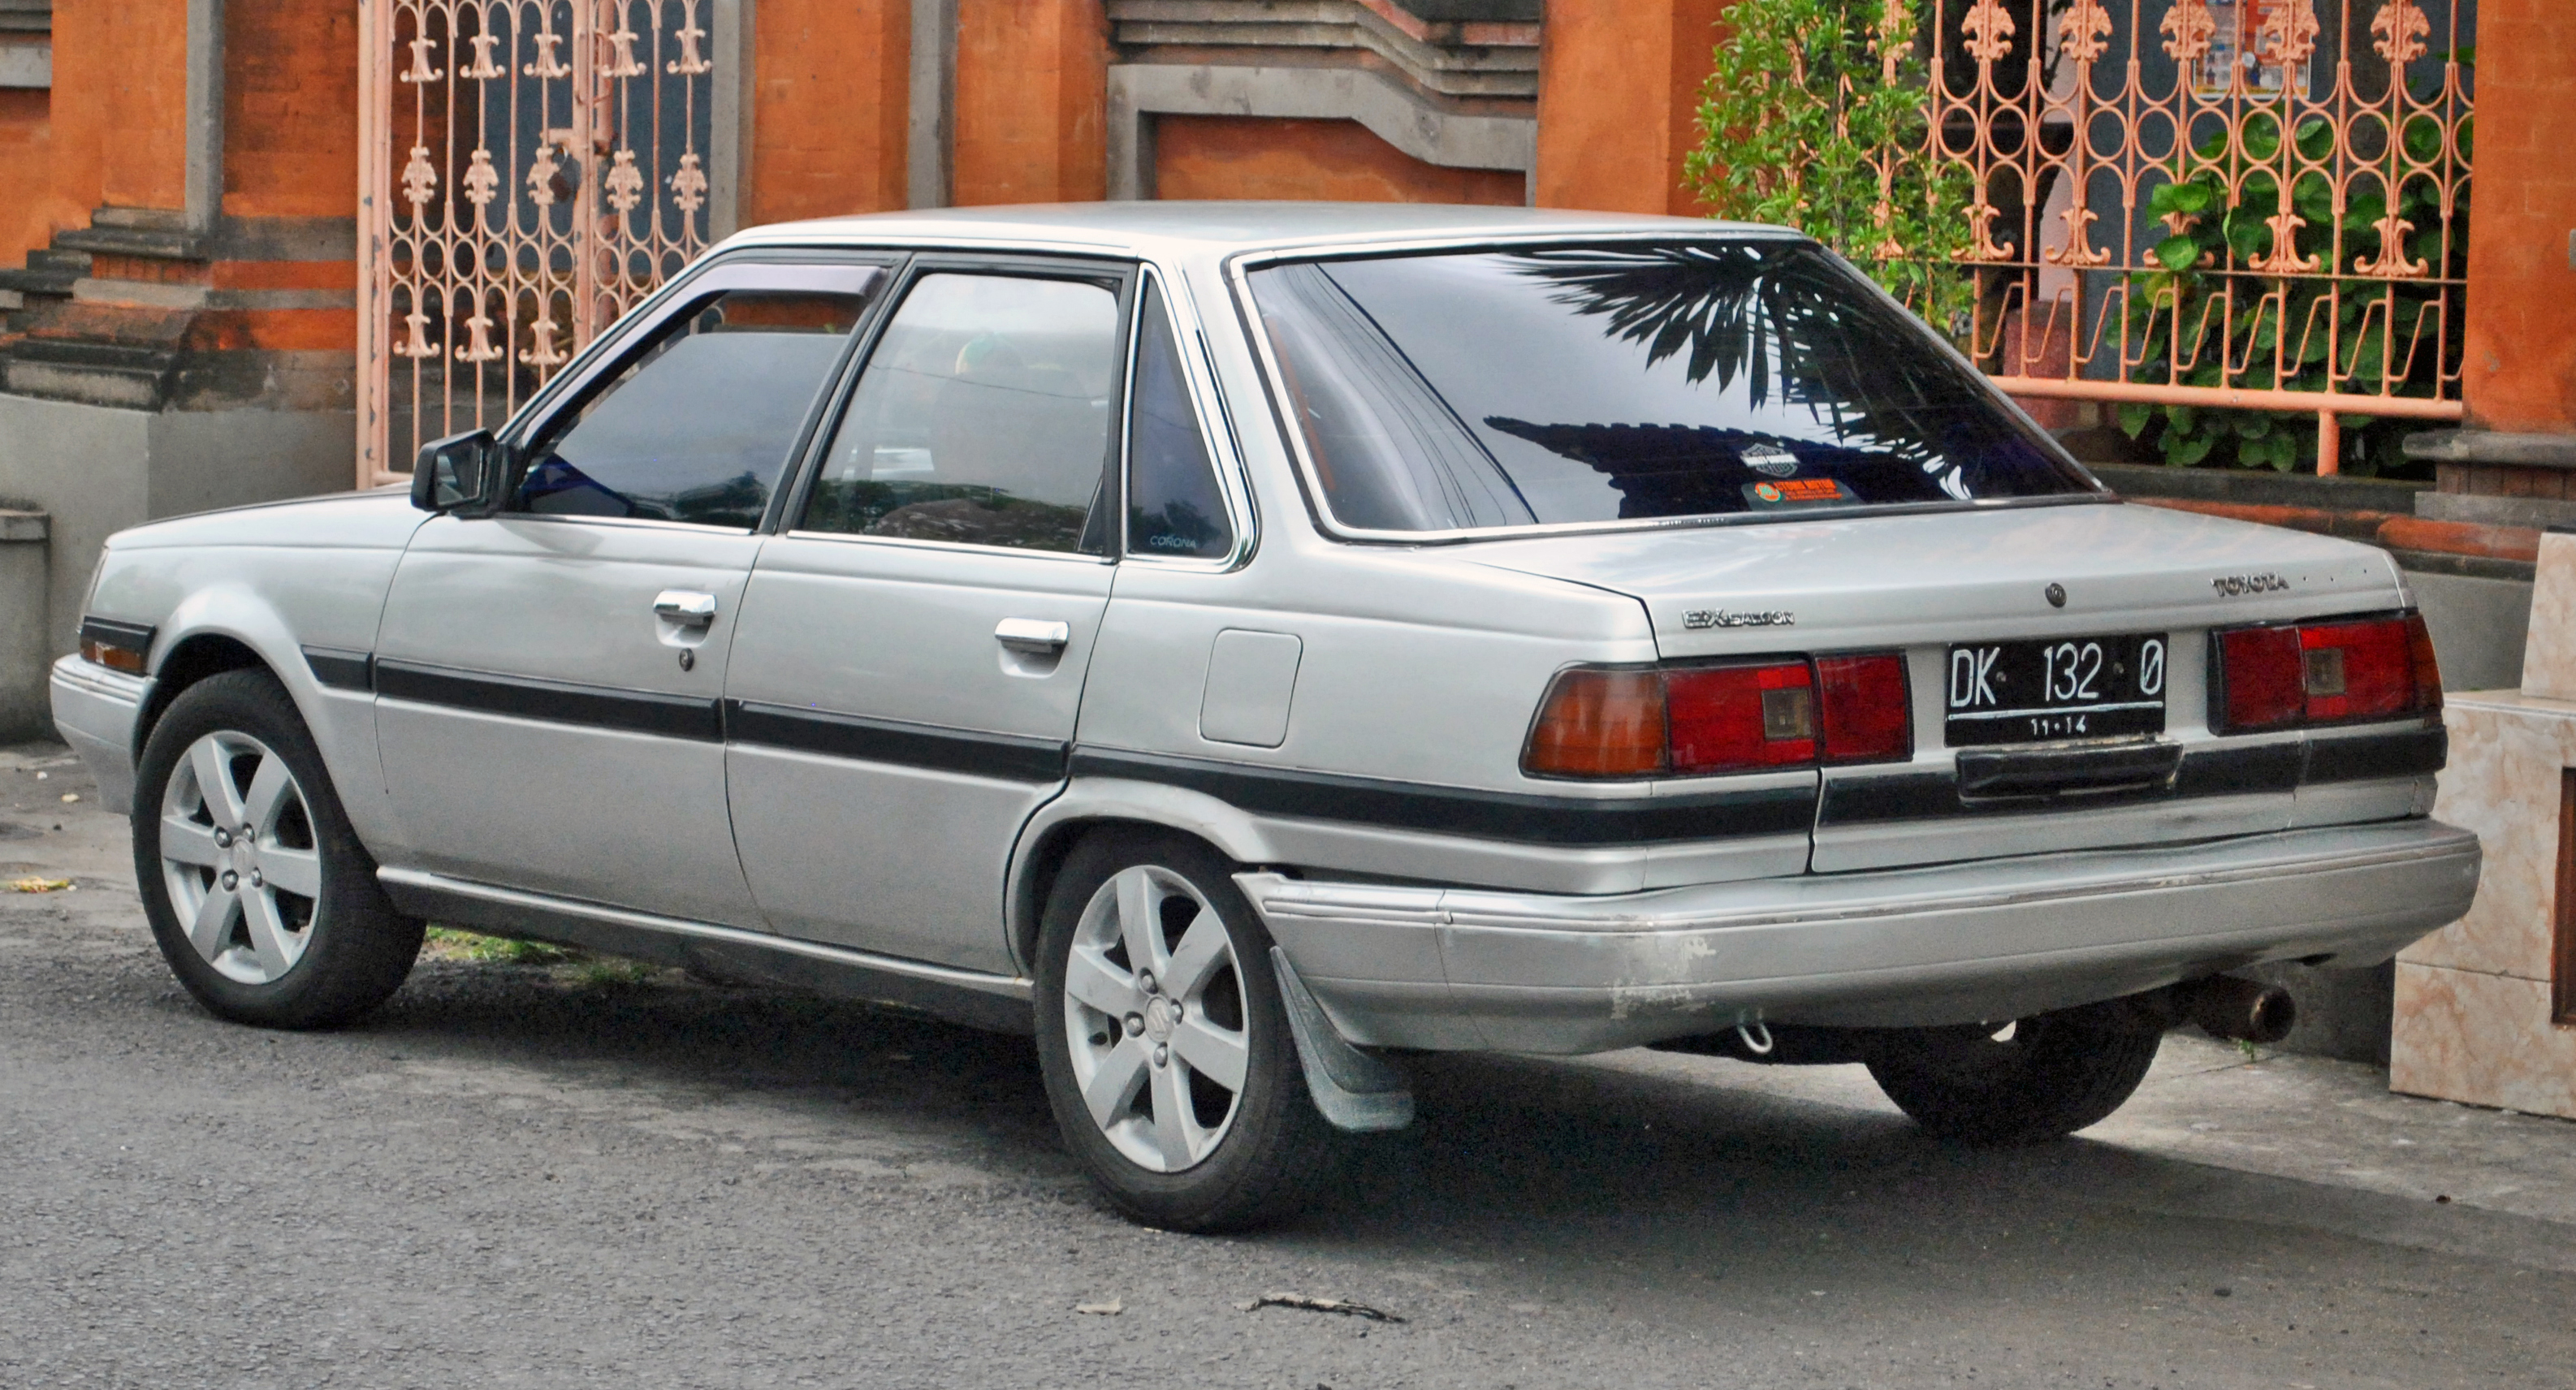 Toyota Corona Wikipedia 2000 Corolla Fuel Filter Location Ex Sedan With Non Standard Wheels